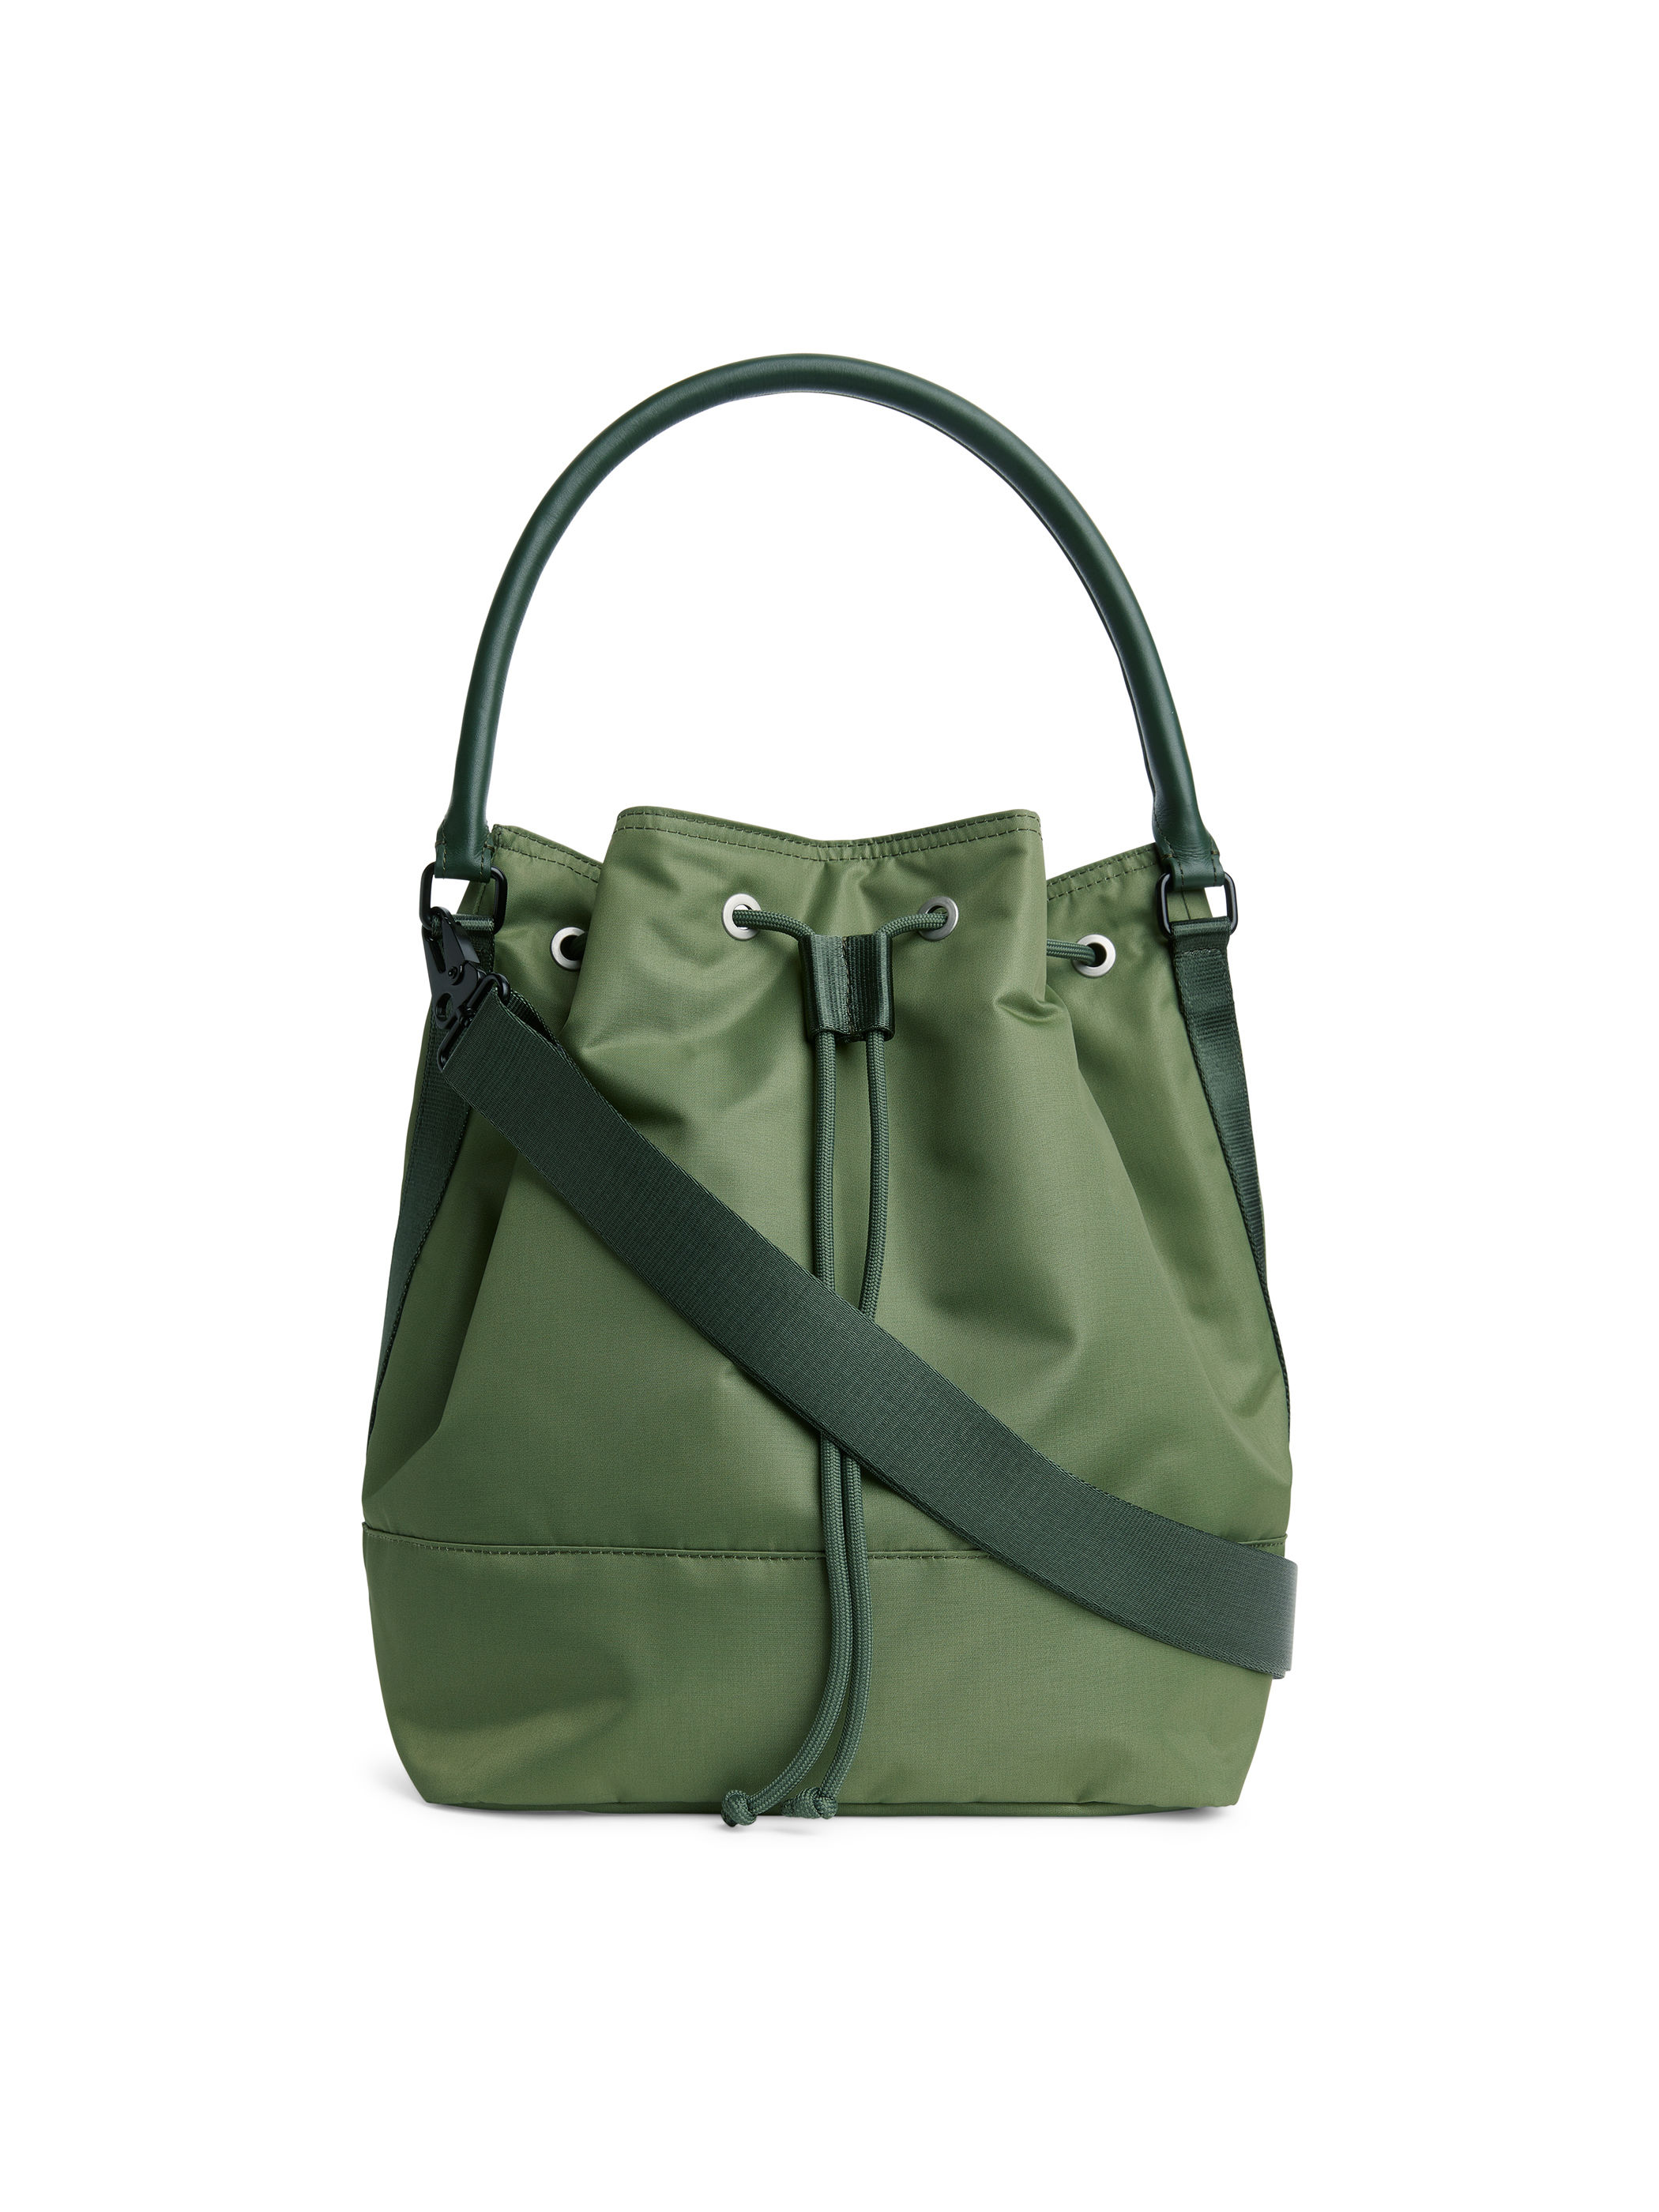 Fabric Swatch image of Arket nylon bucket bag in green